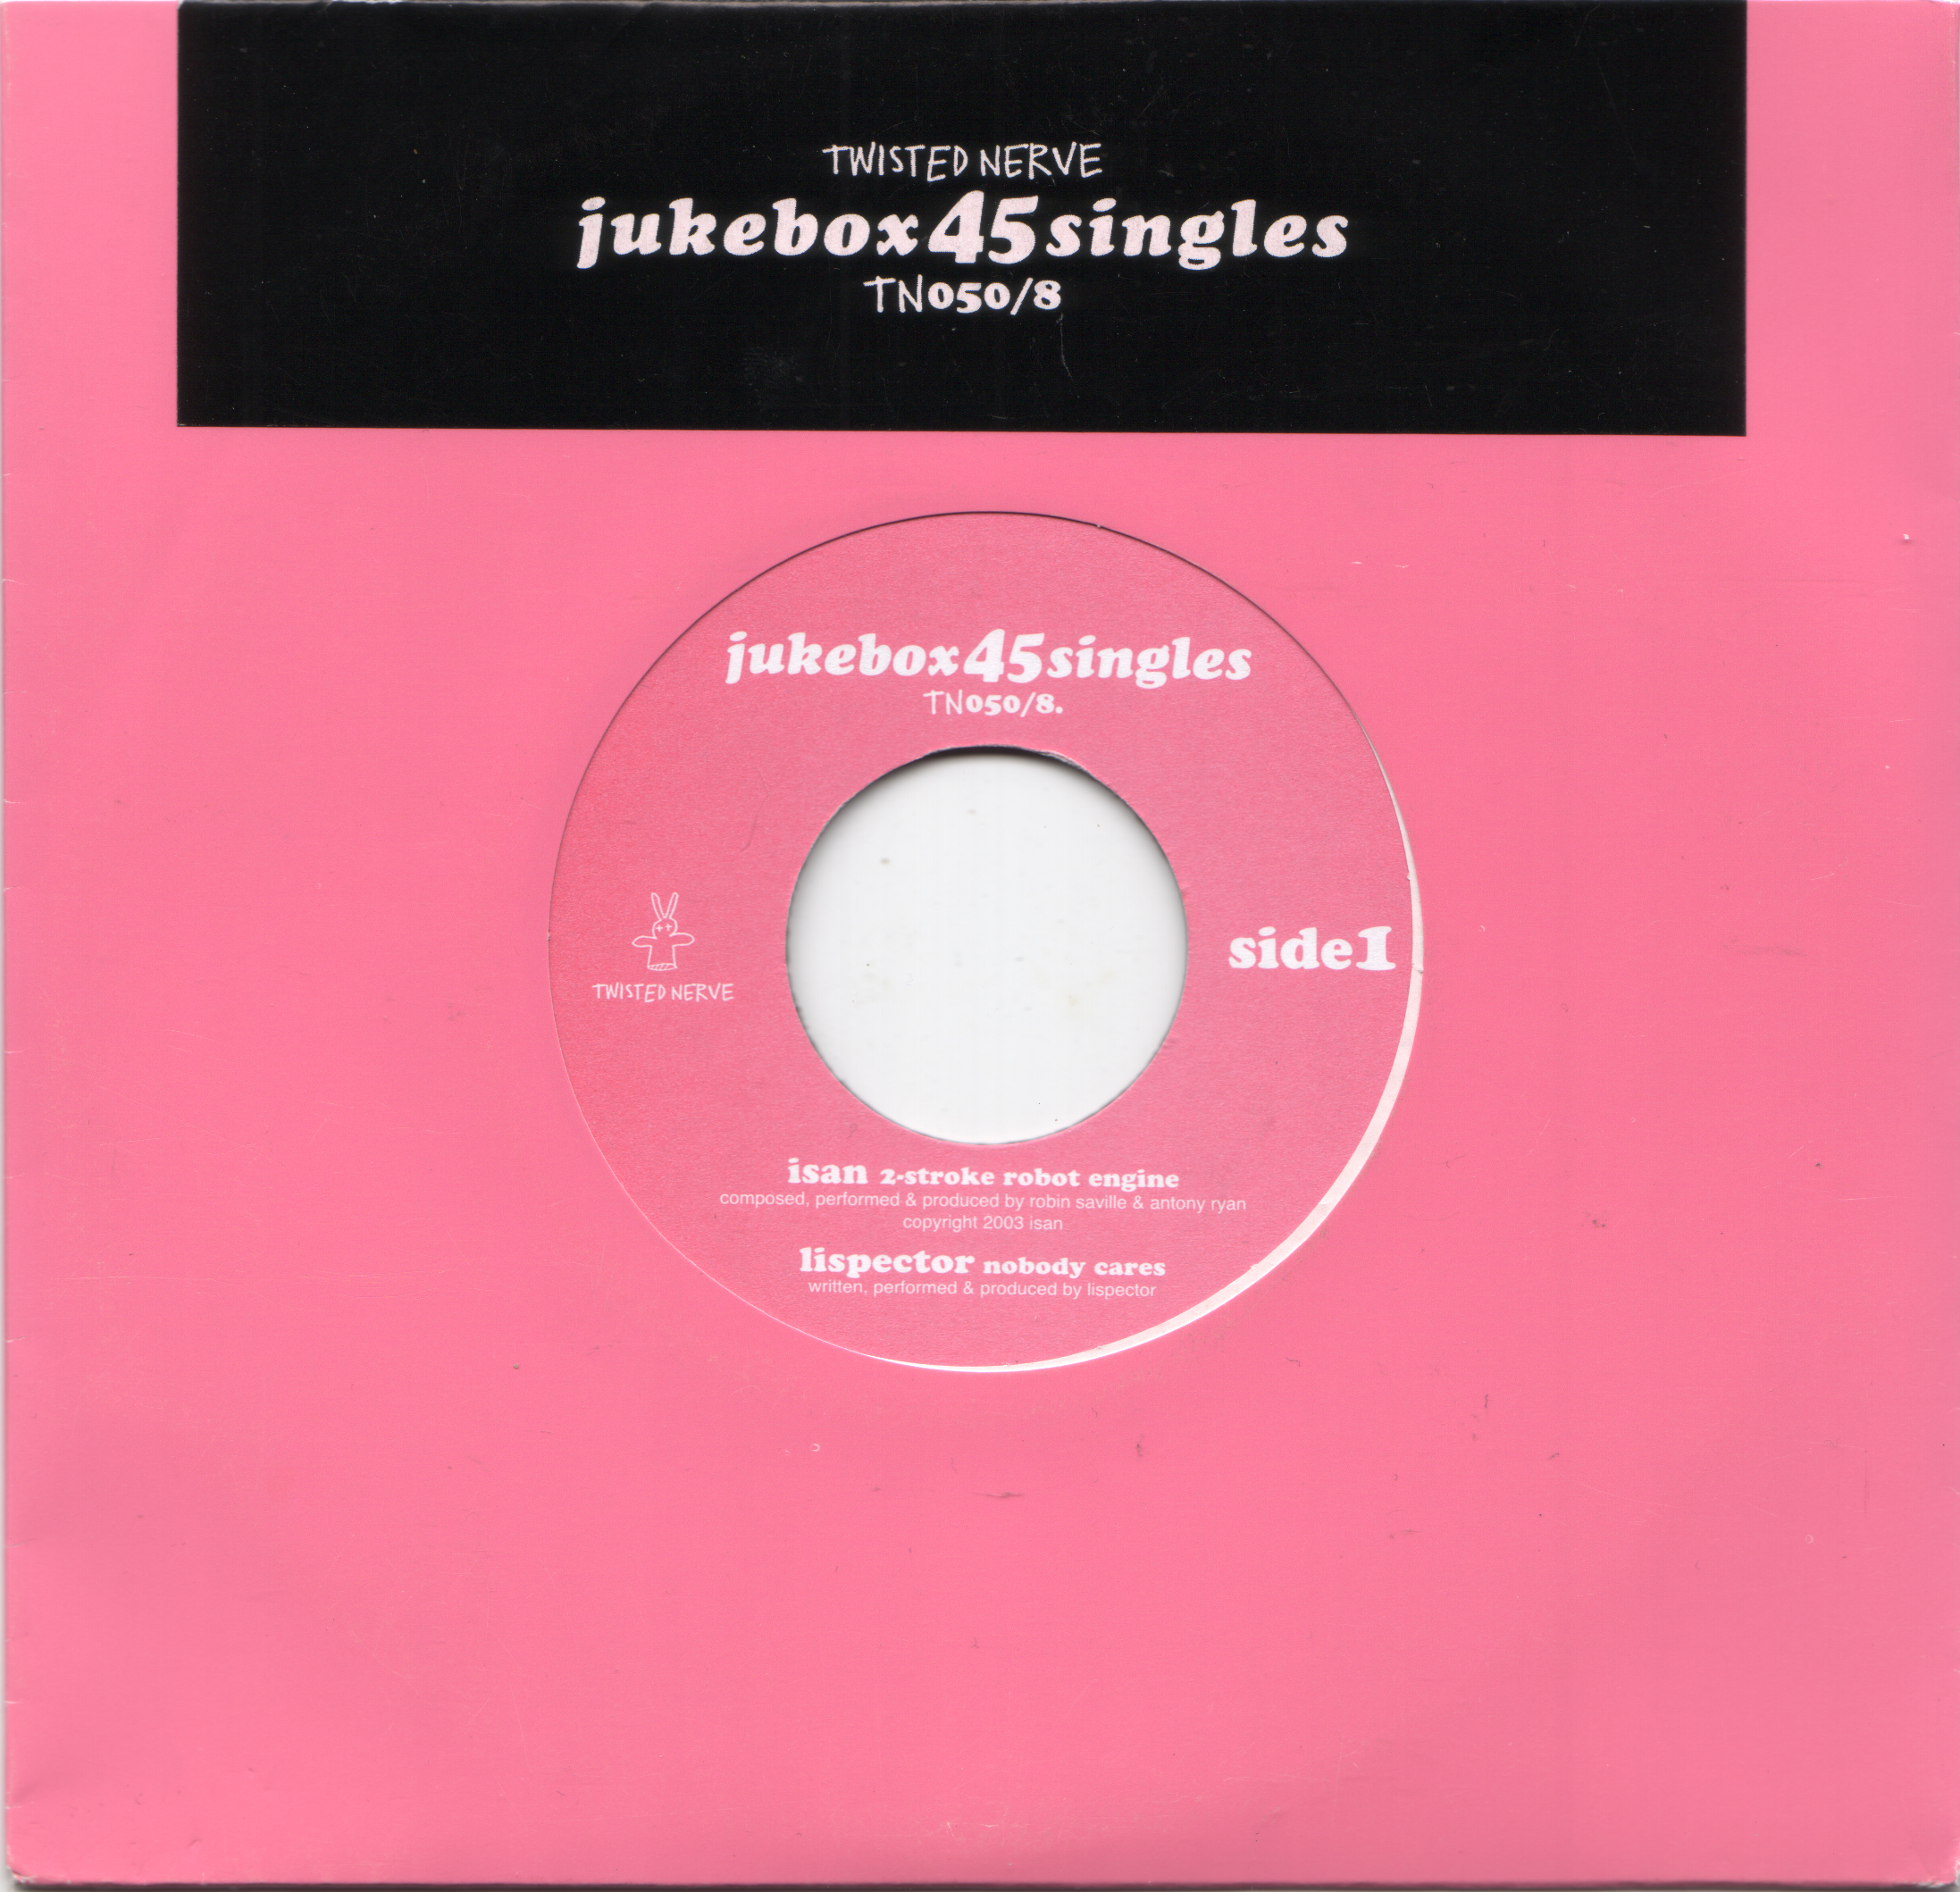 2003 - TN 050:8  - Jukebox 45 - Singles Issue 8 - (Twisted Nerve) Cover - EP.jpg